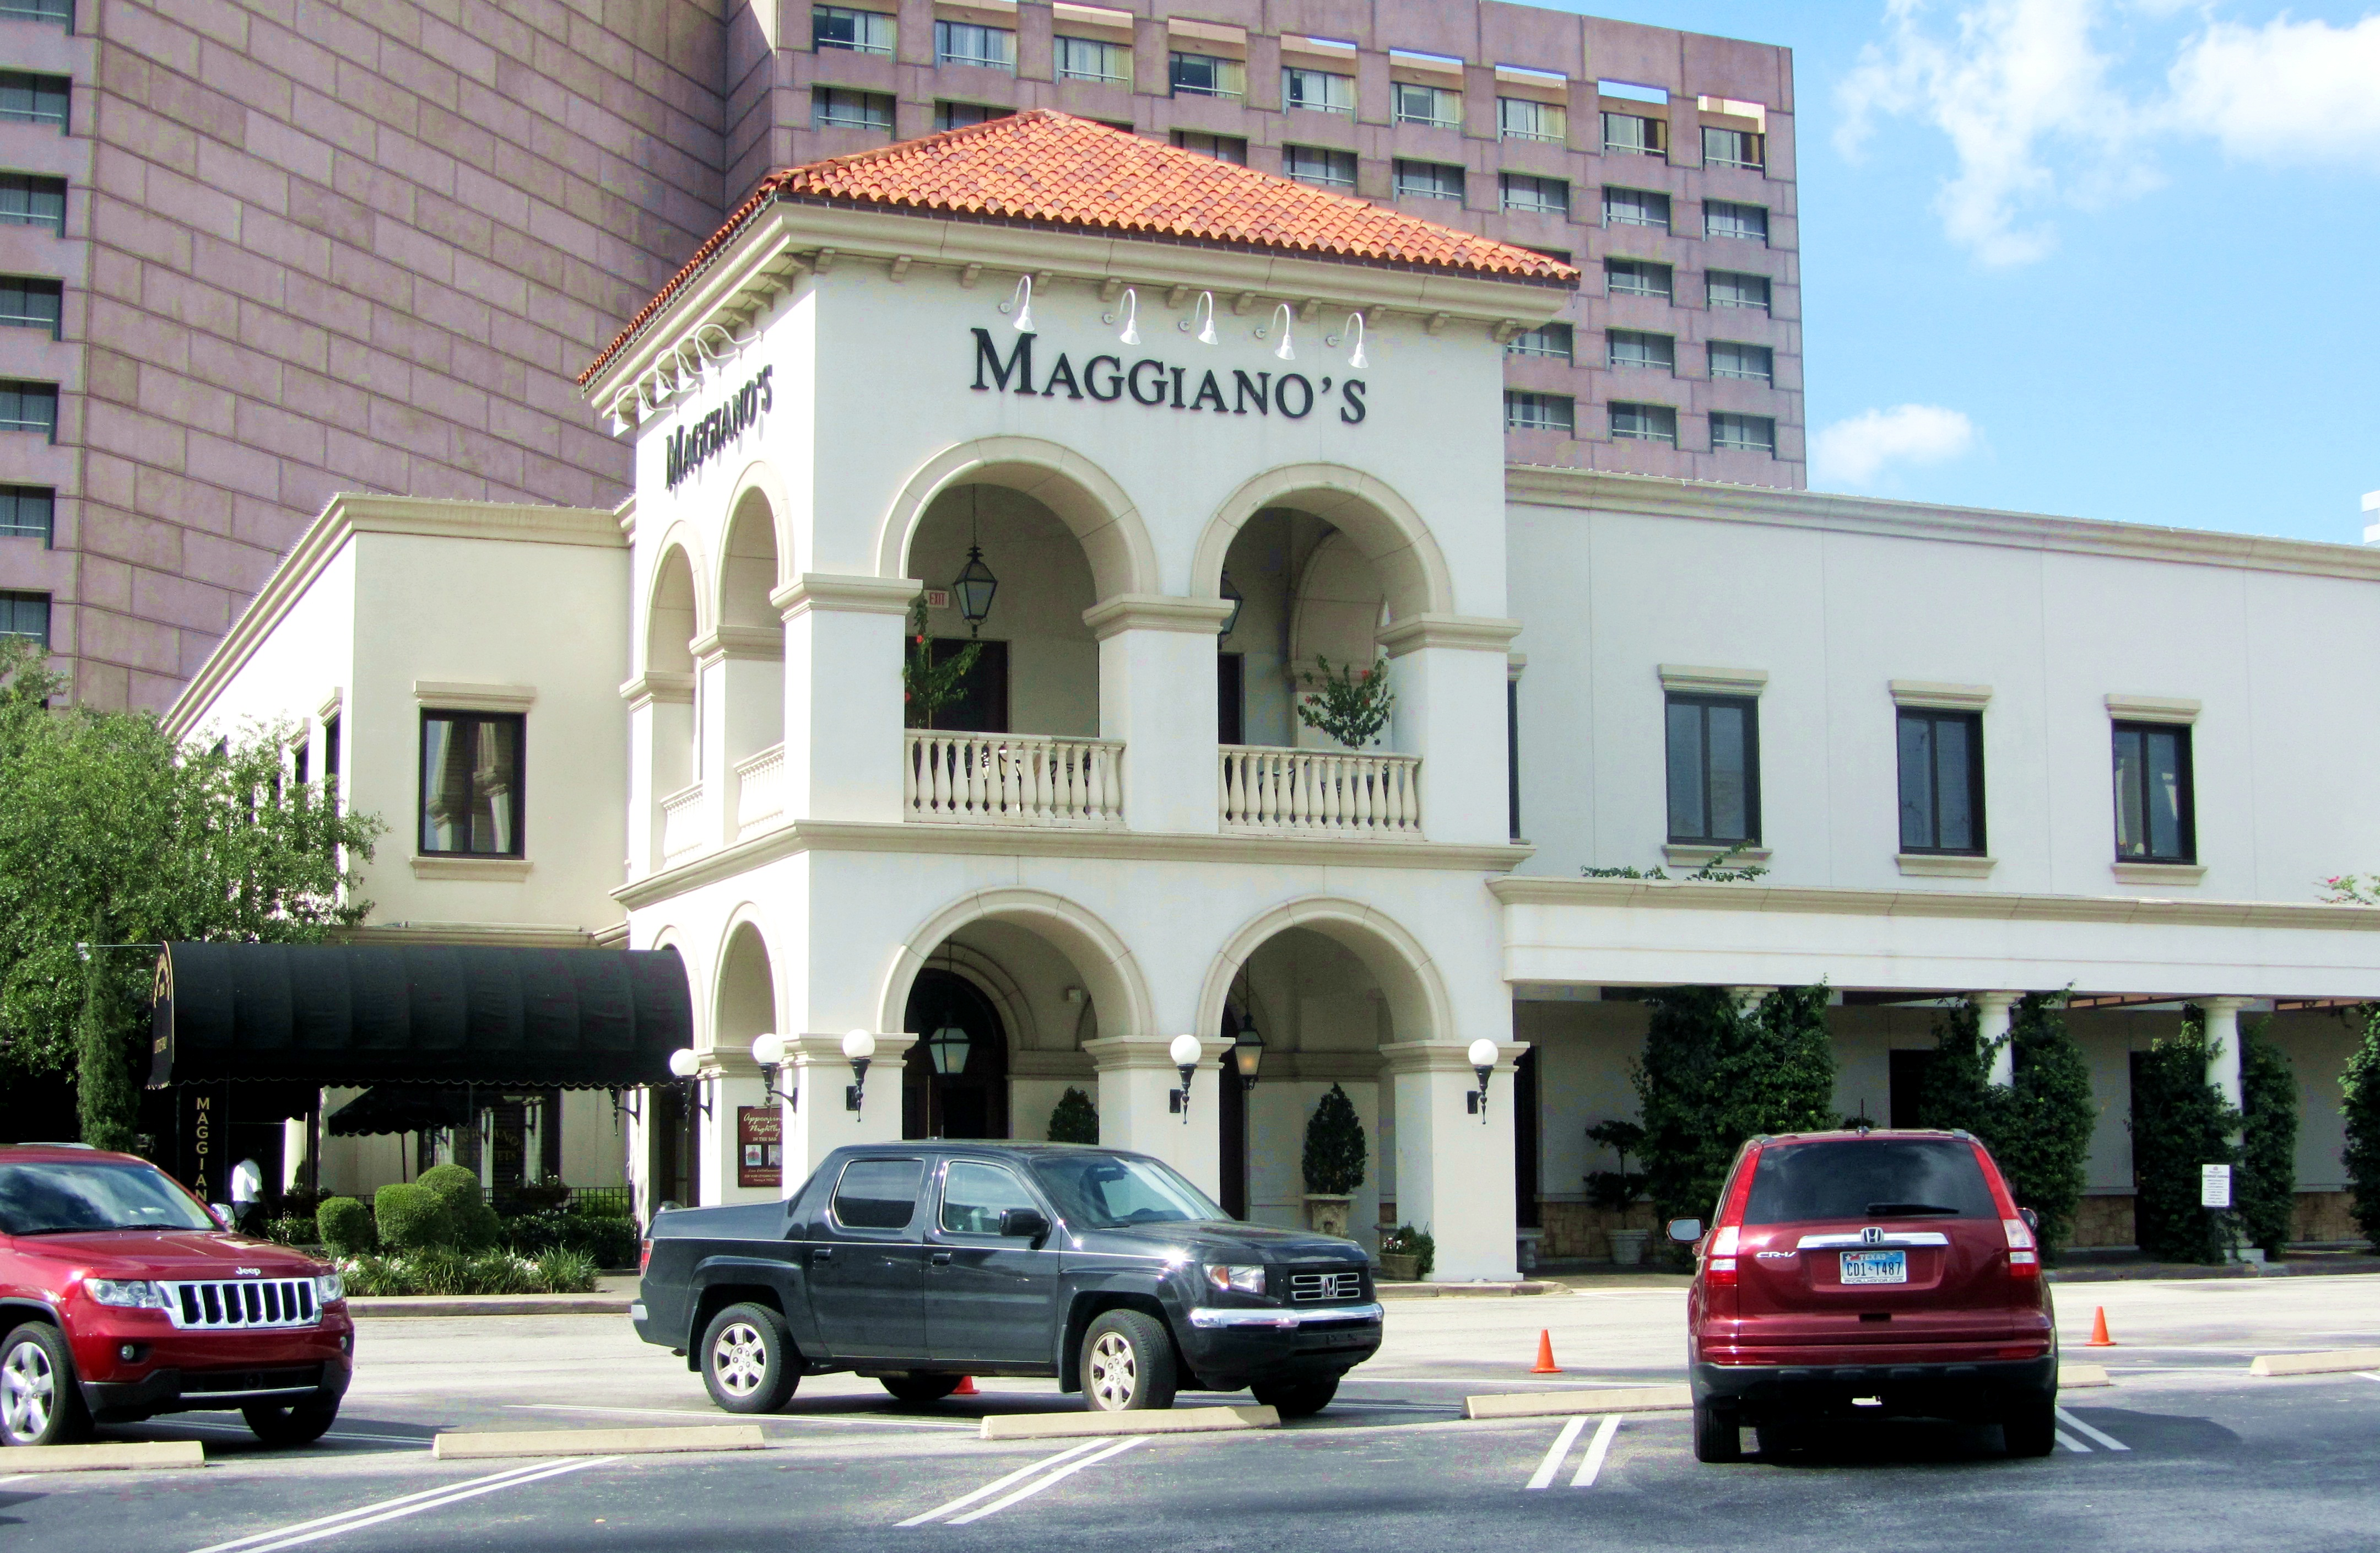 The Houston Maggiano's is located between Westheimer and San Felipe, which is a block from the Houston Galleria and next door to the Hilton orimono.gaon: Post Oak Blvd, Houston, , TX.